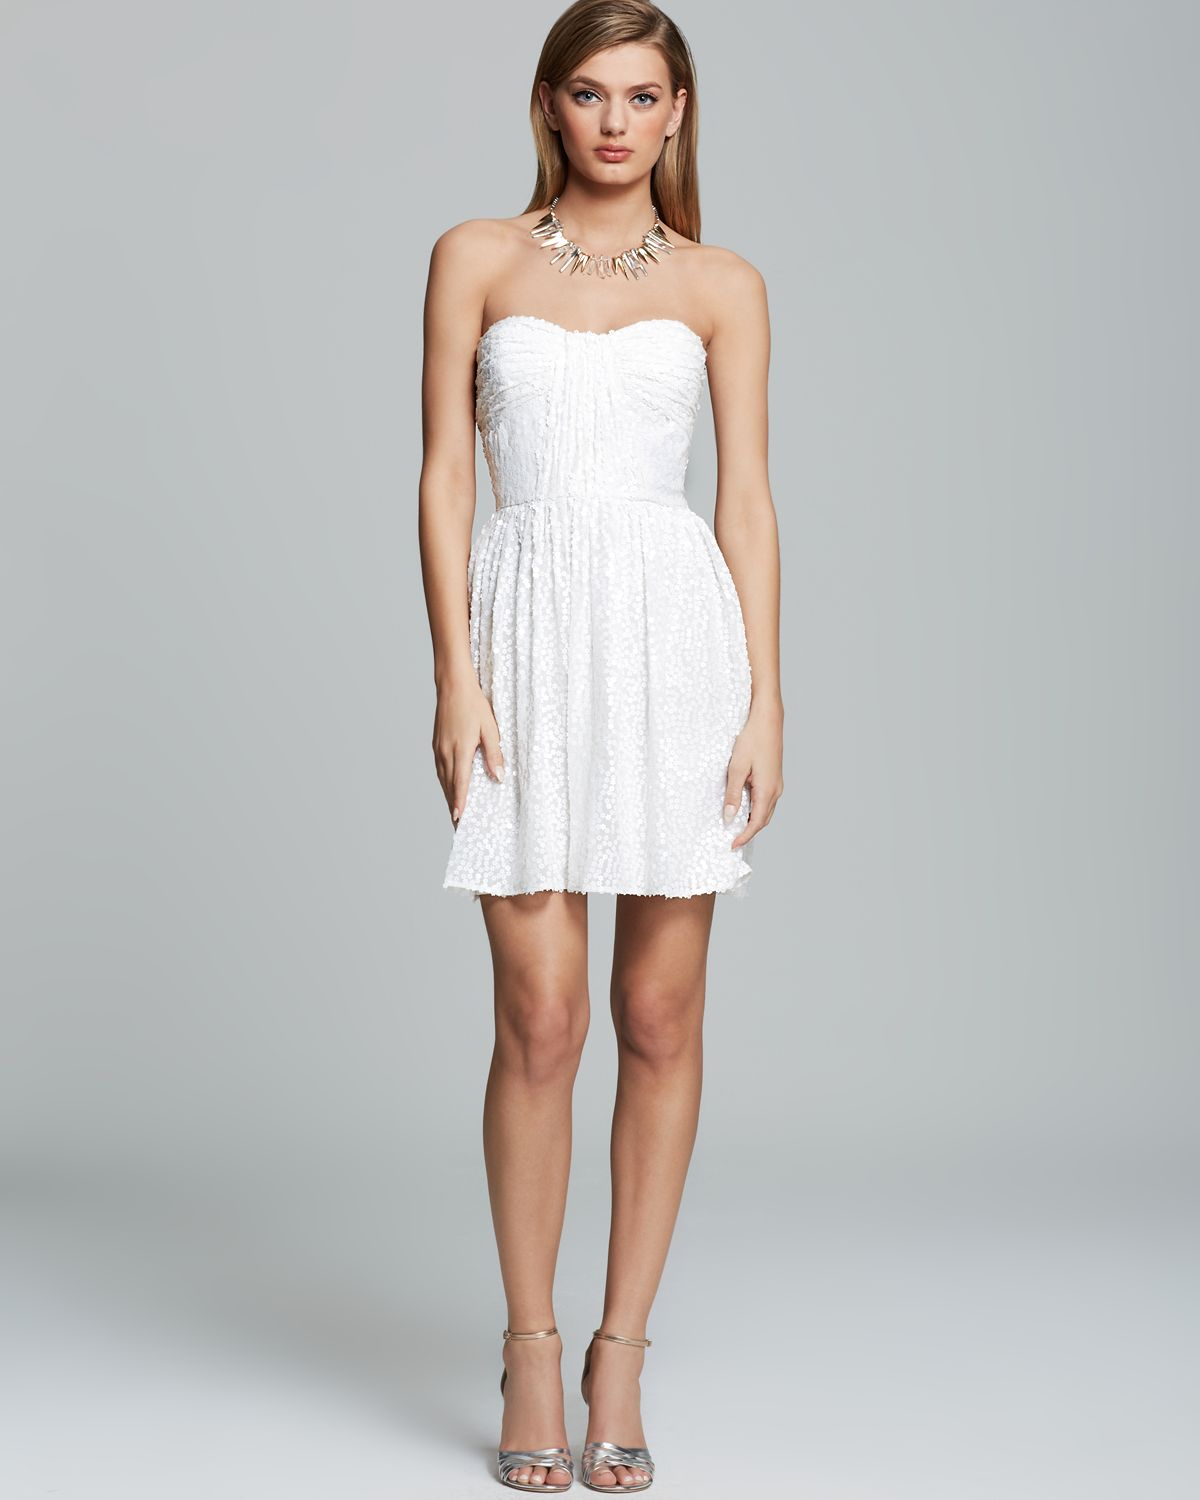 Jill jill stuart Dress - Strapless Ruched Sequin in White  Lyst